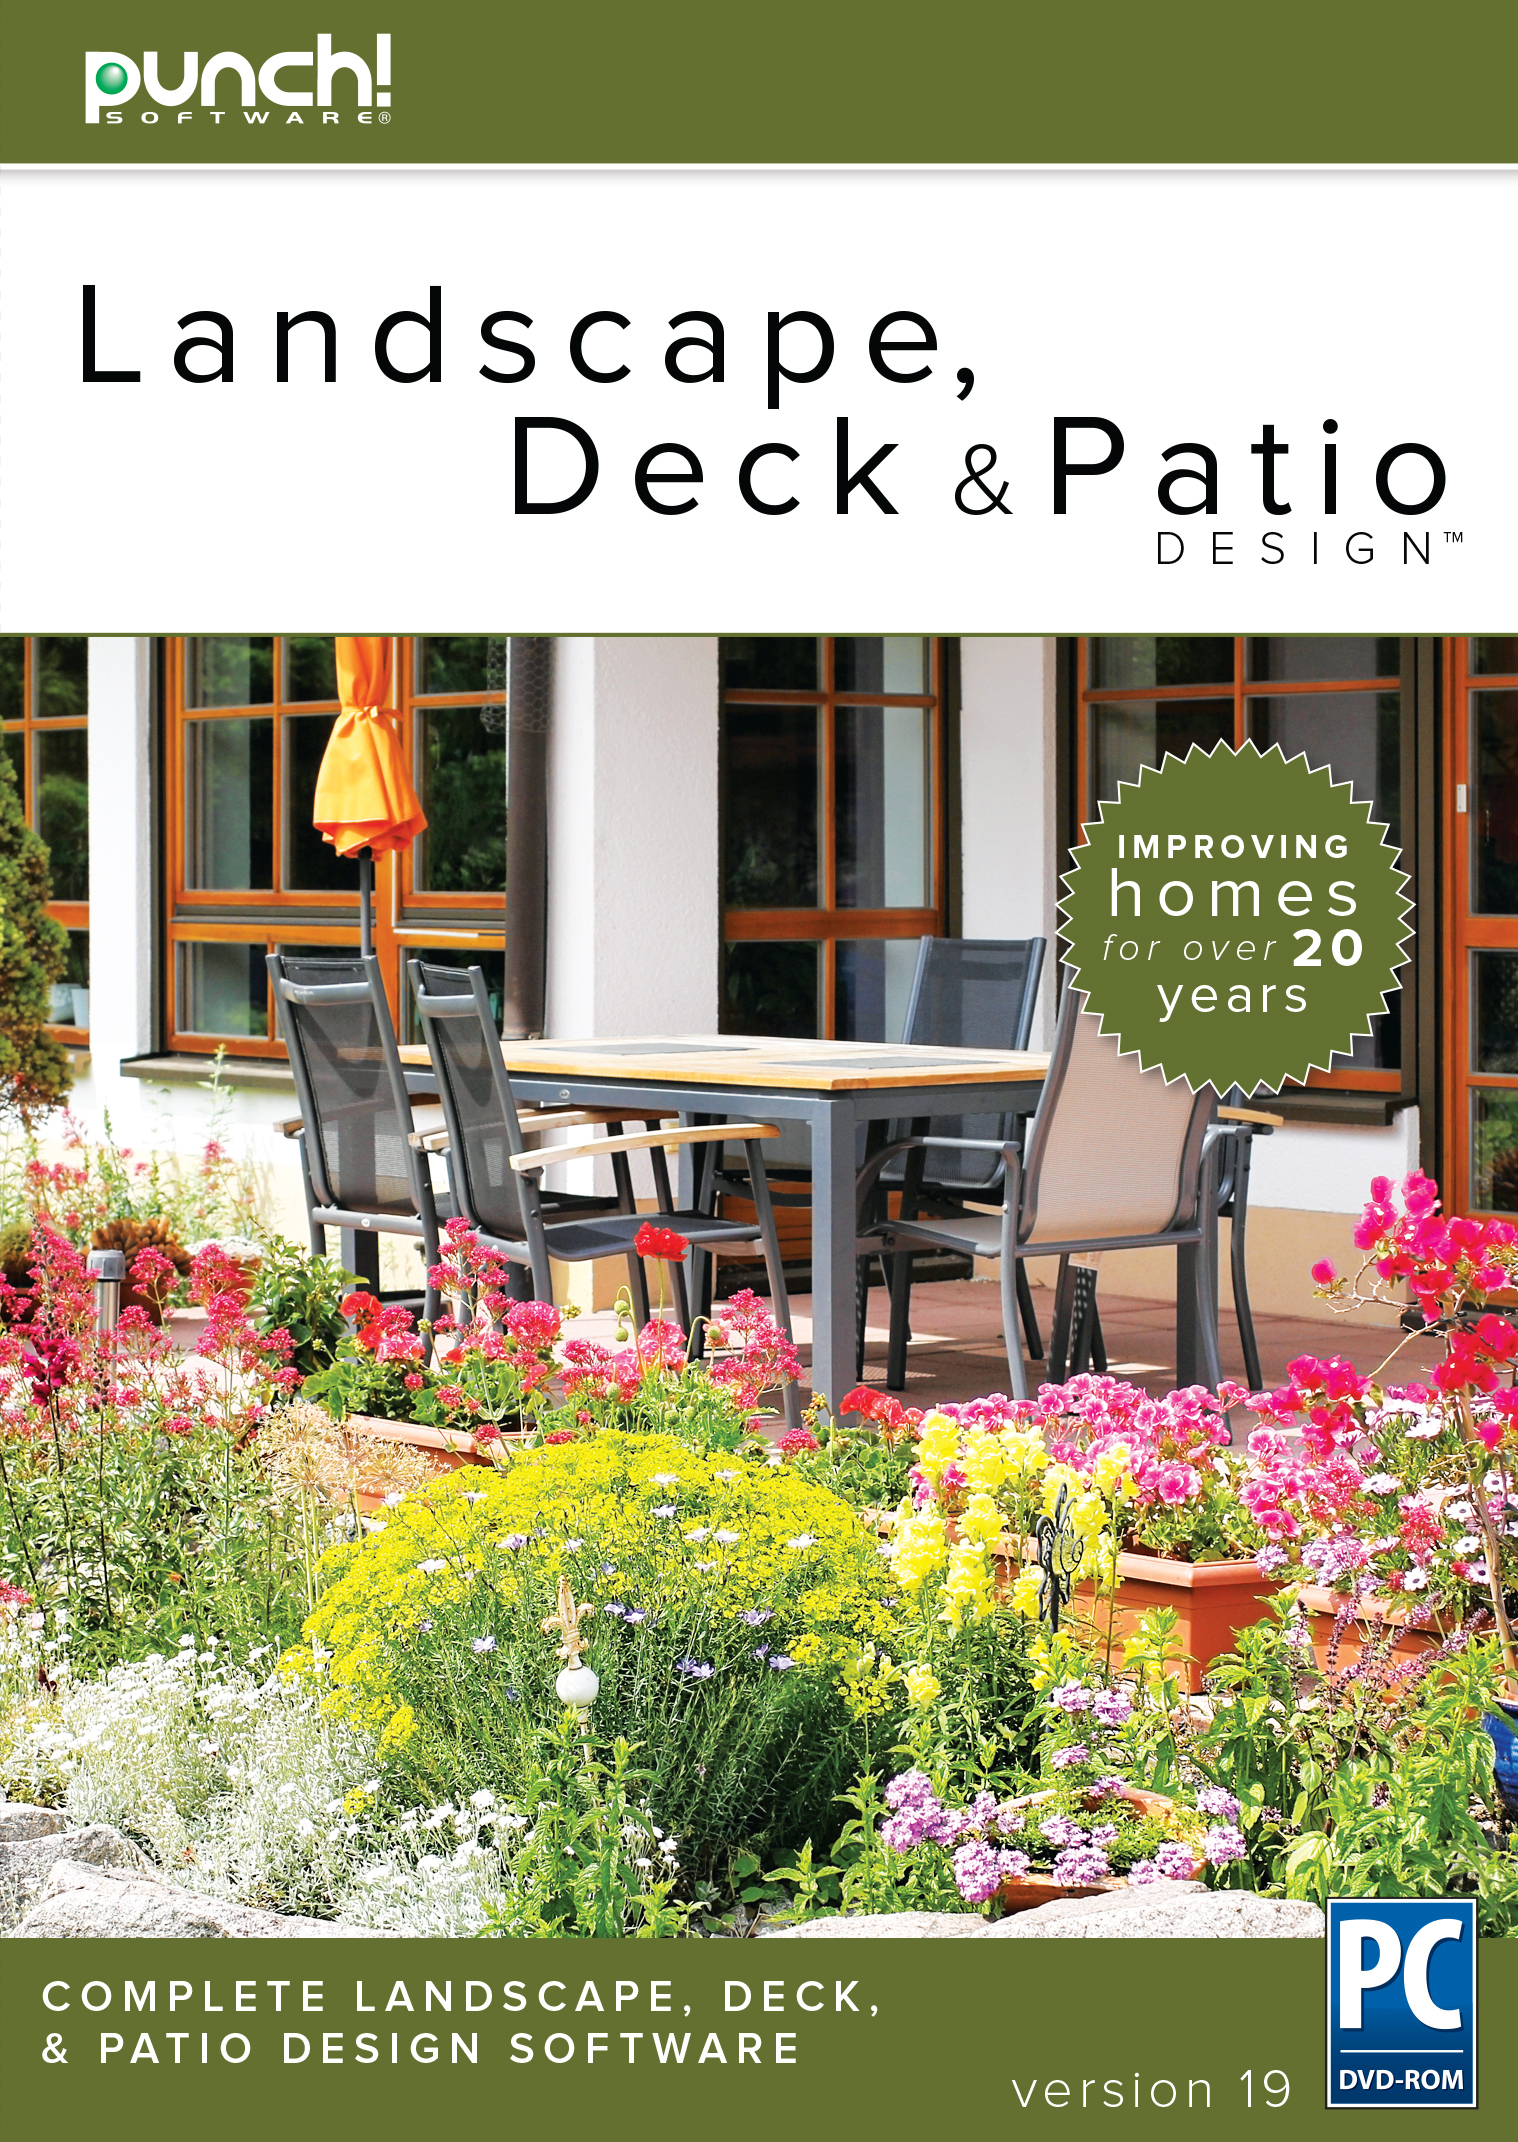 Punch! Landscape, Deck and Patio Design v19 for Windows  PC [Download] (Patios For Designs Brick)